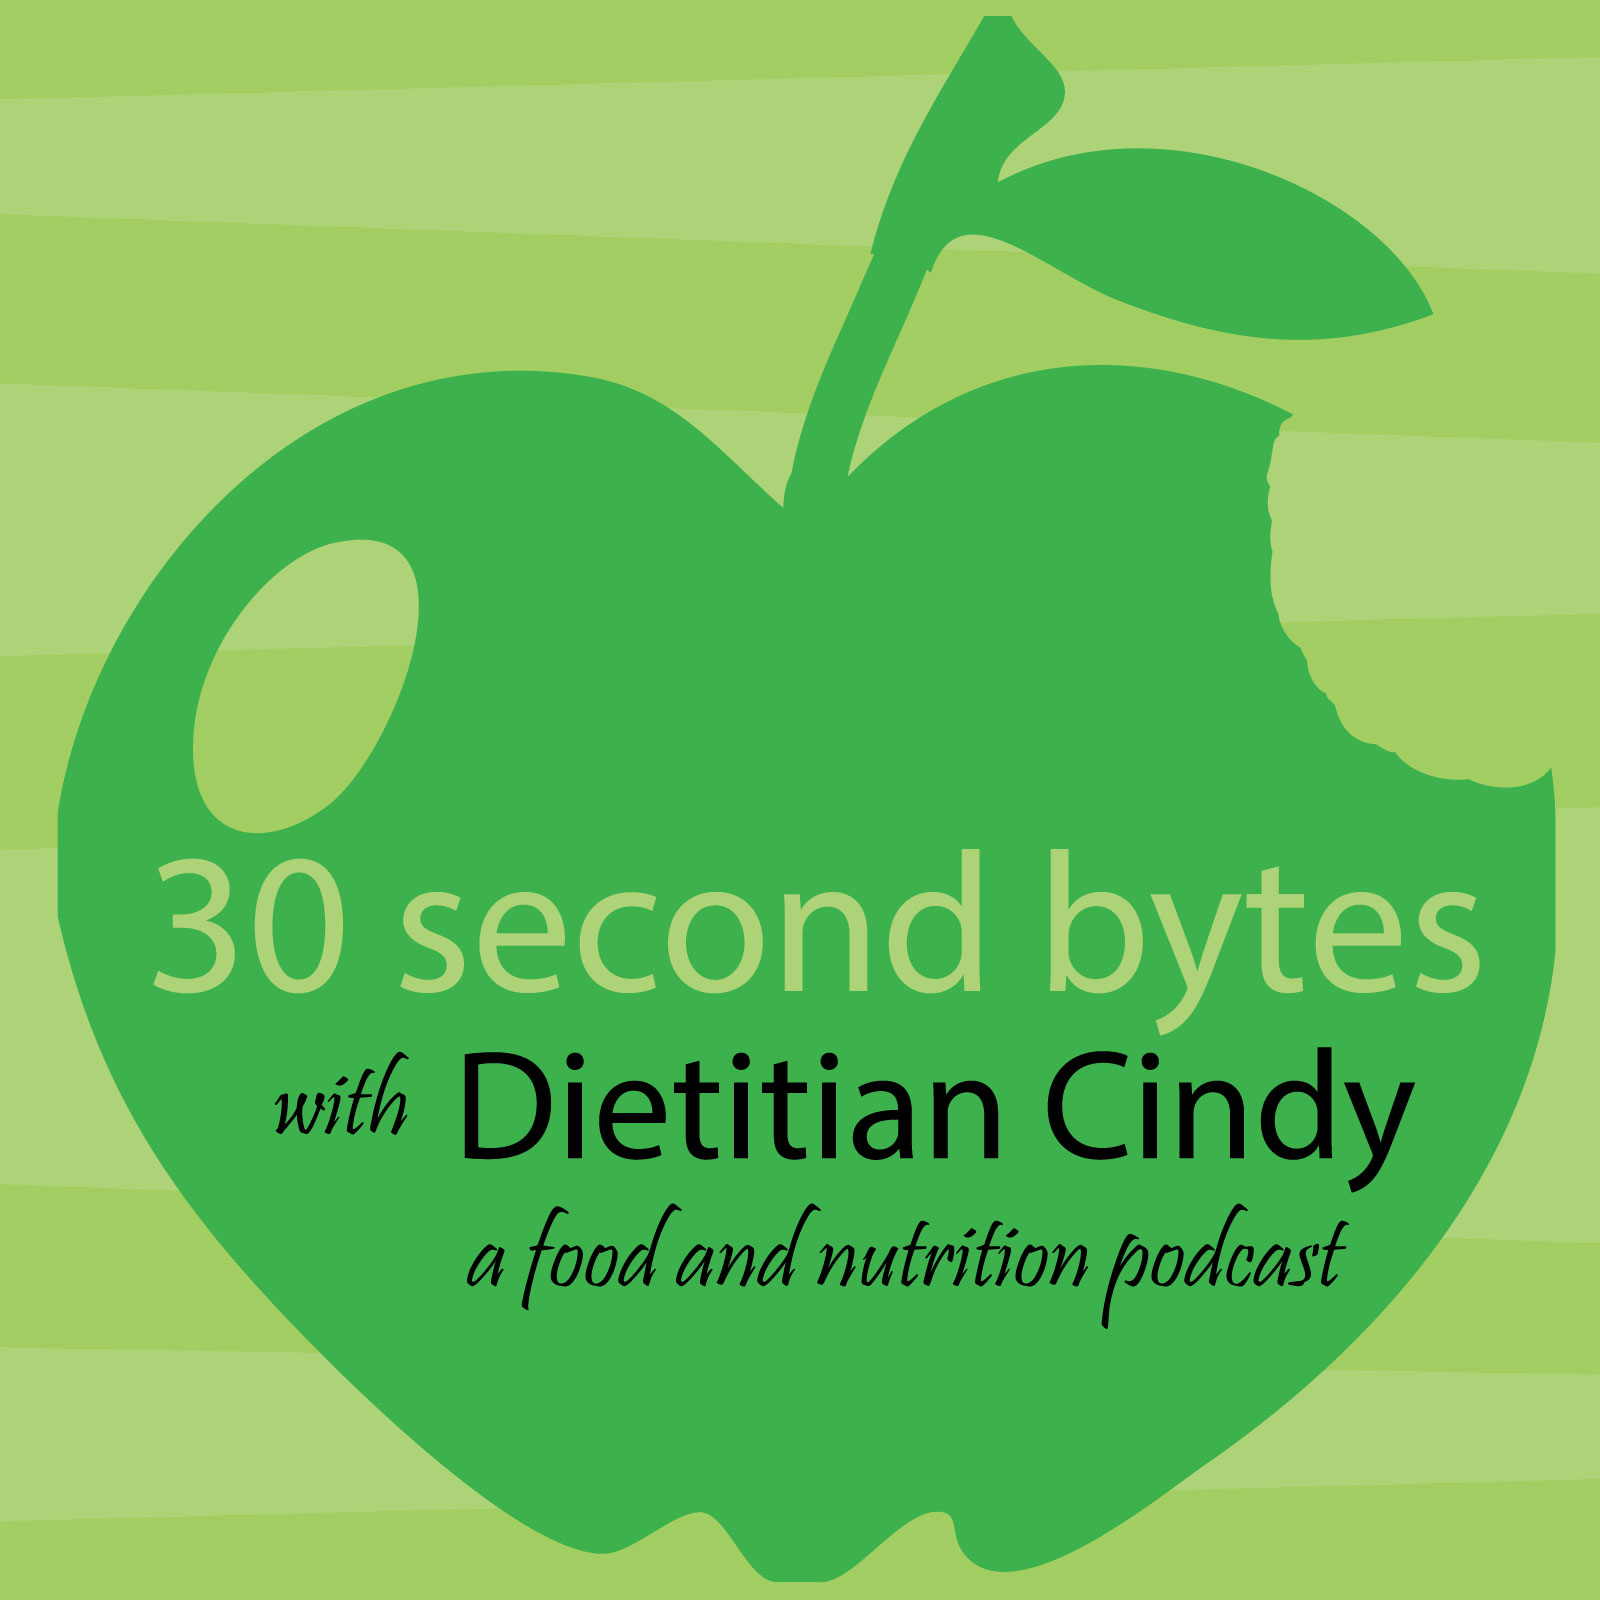 30 Second Bytes with Dietitian Cindy show art